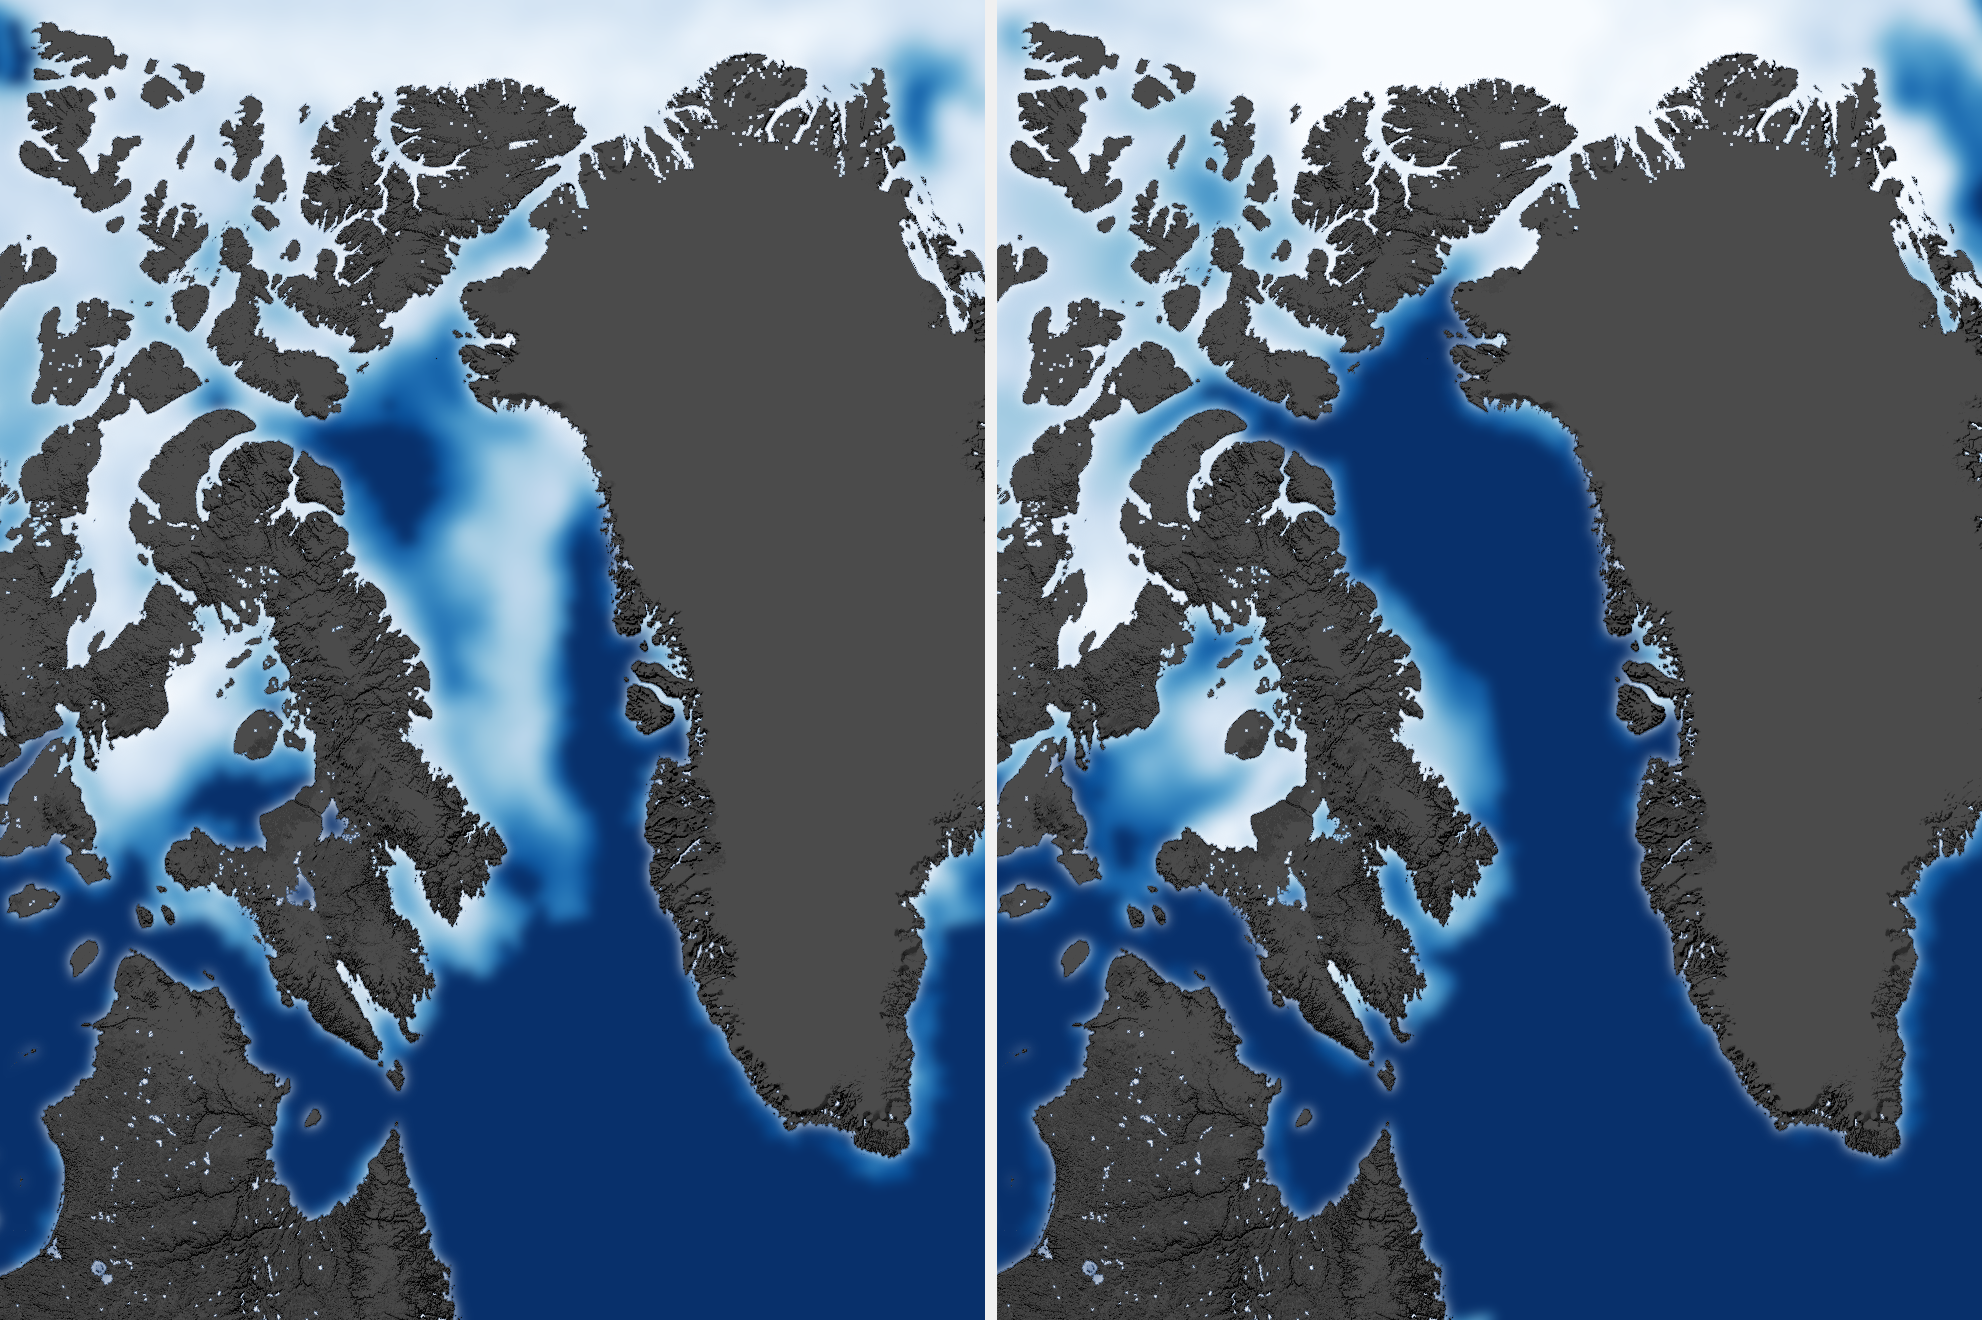 The map from the 1990s shows white ice stretching over the entirety of Baffin Bay while the more recent map on the right shows no ice that spans the bay